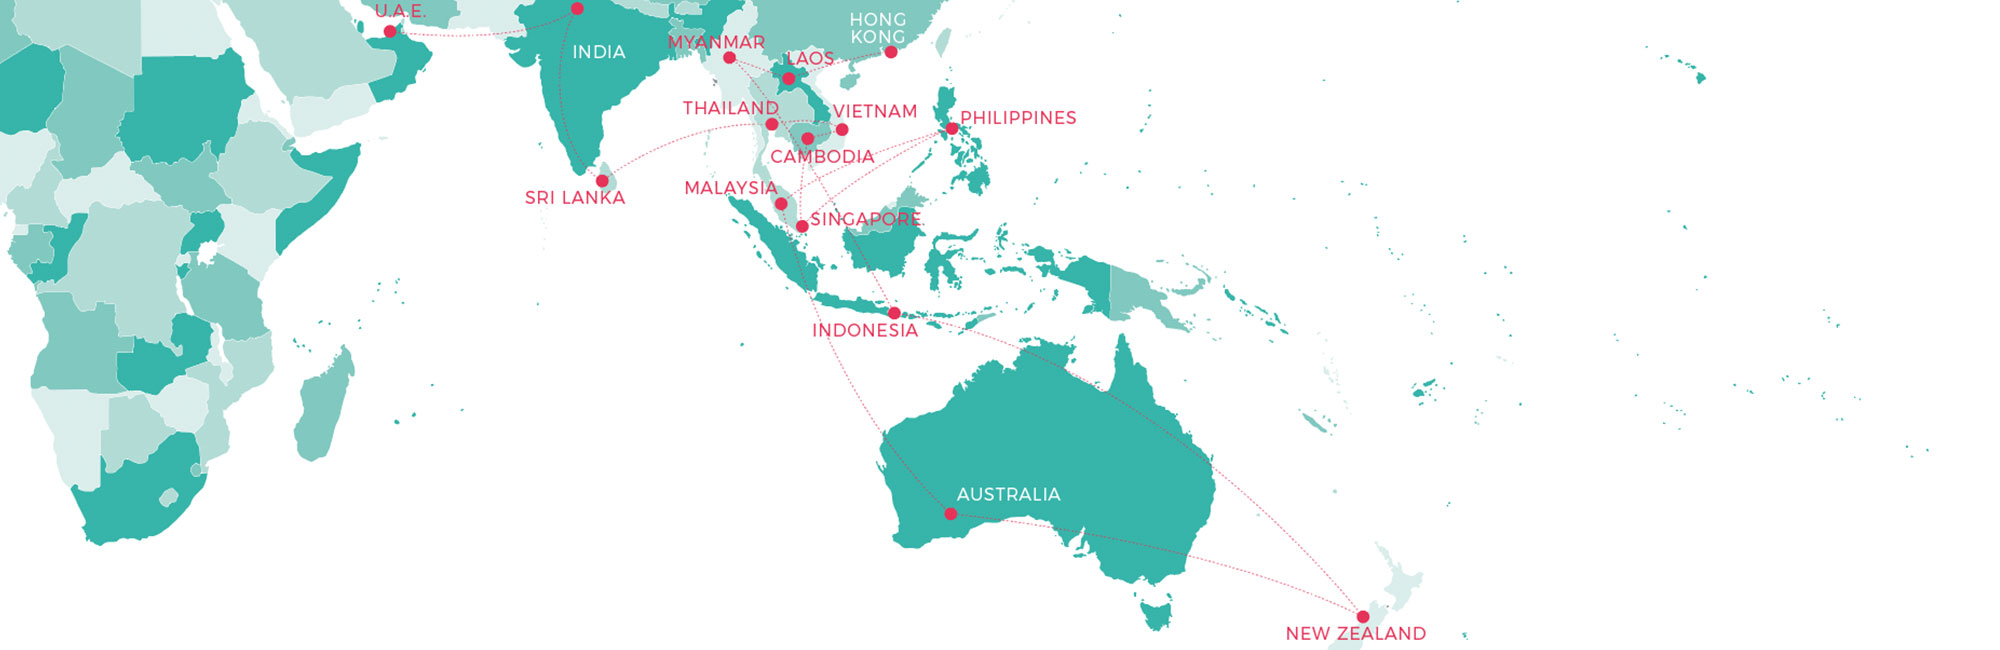 South East Asia map outlining Itinerary for travel plans